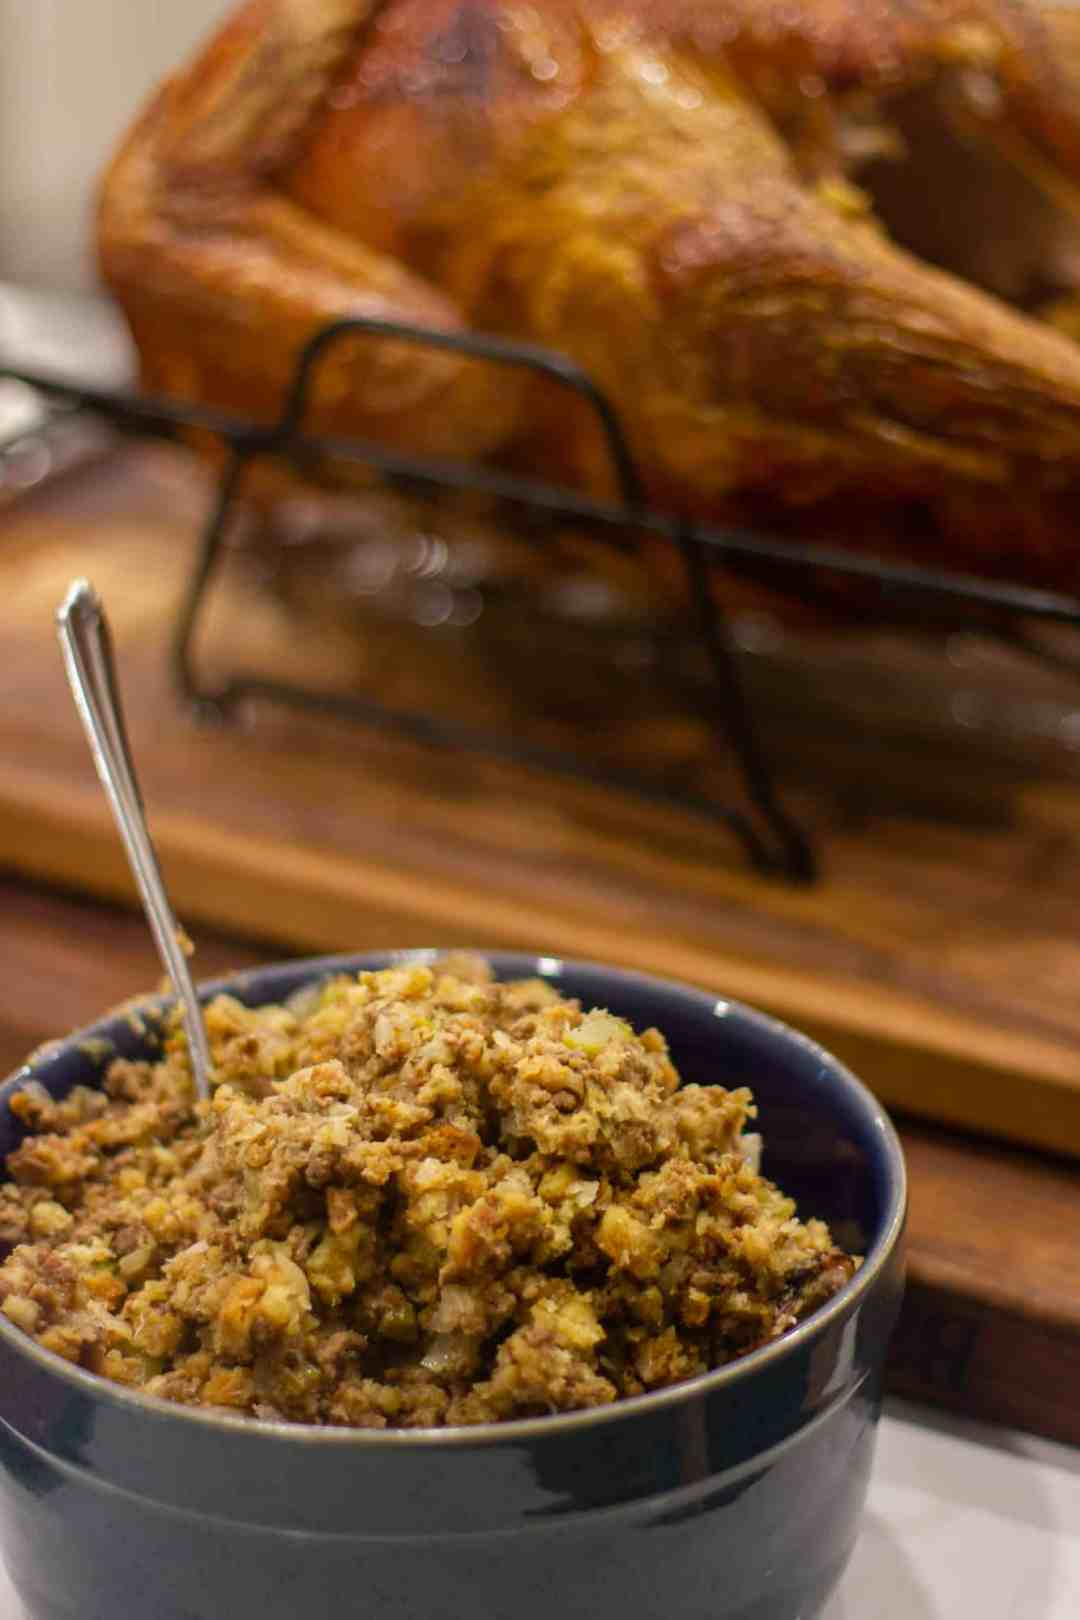 Turkey stuffing recipe made with ground beef, onion, celery and stuffing mix. The perfect stuffing for holiday dinners like christmas and thanksgiving.